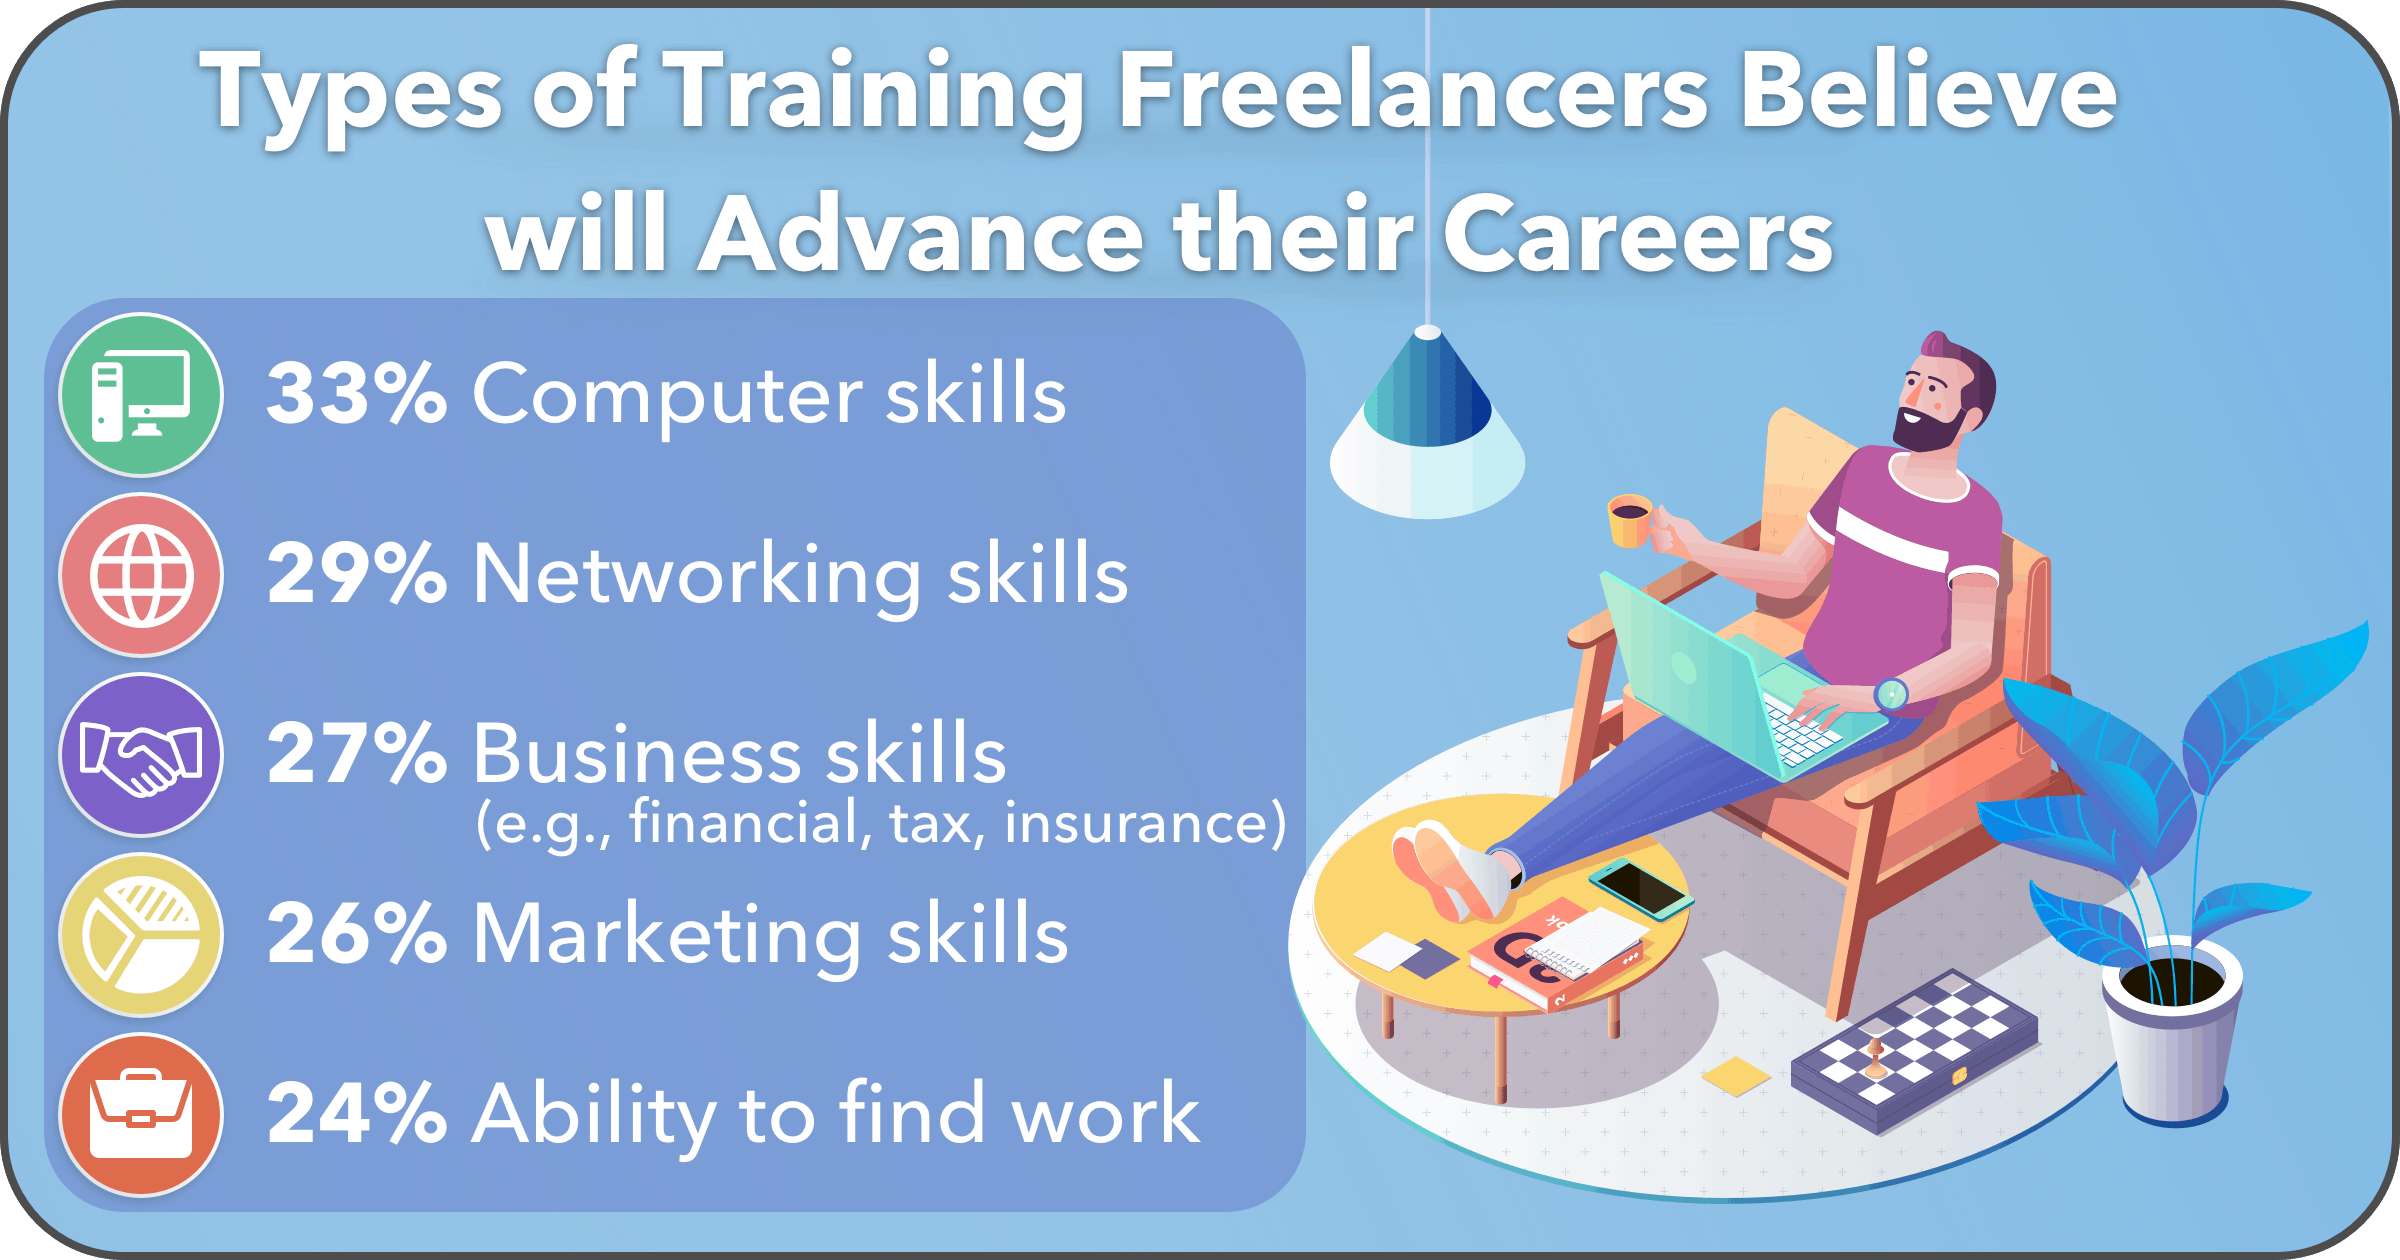 Freelancers Turn to Training for Career Advancemen